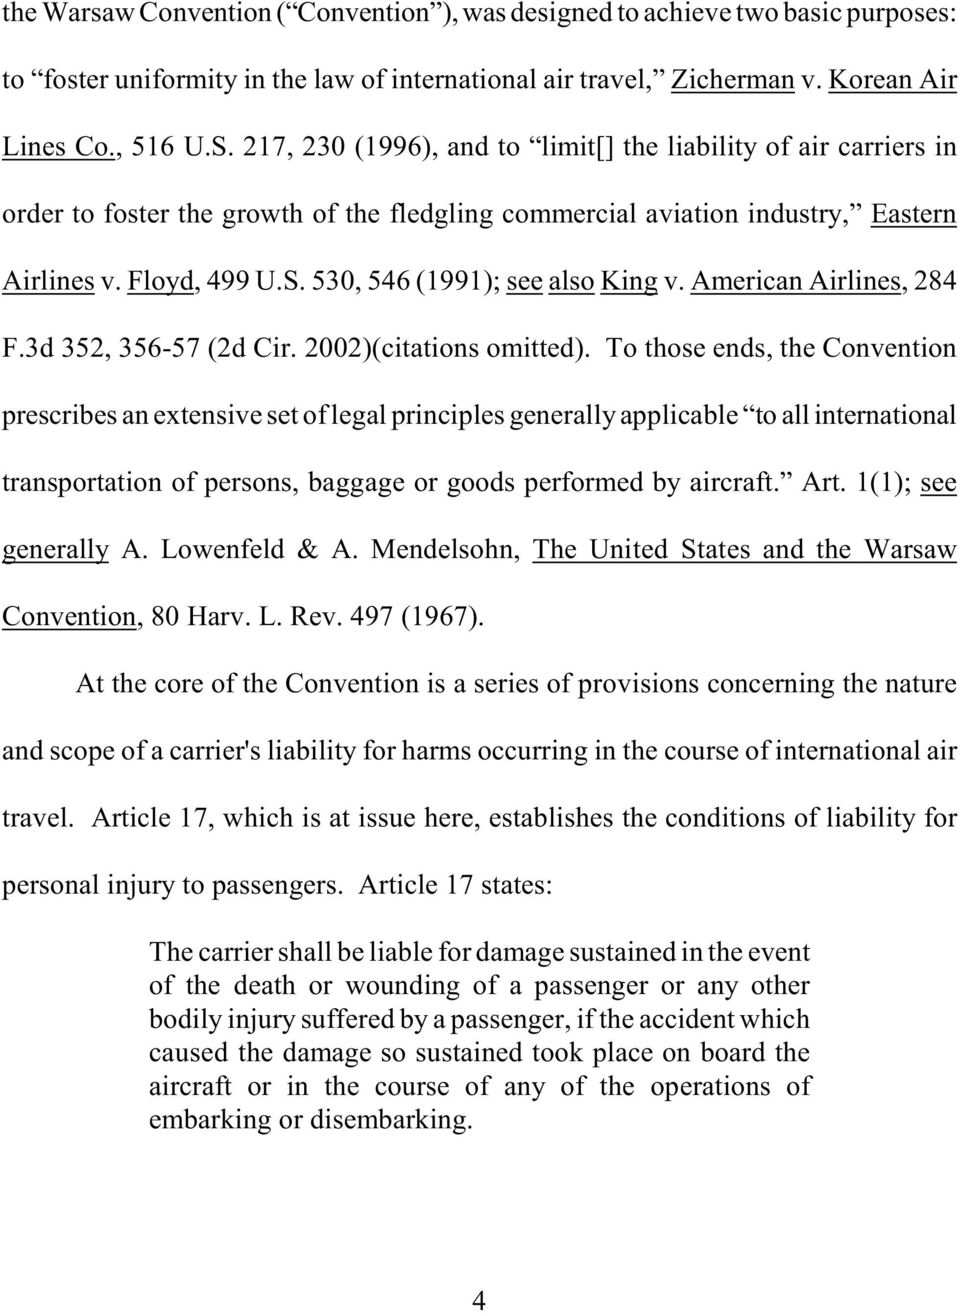 530, 546 (1991); see also King v. American Airlines, 284 F.3d 352, 356-57 (2d Cir. 2002)(citations omitted).